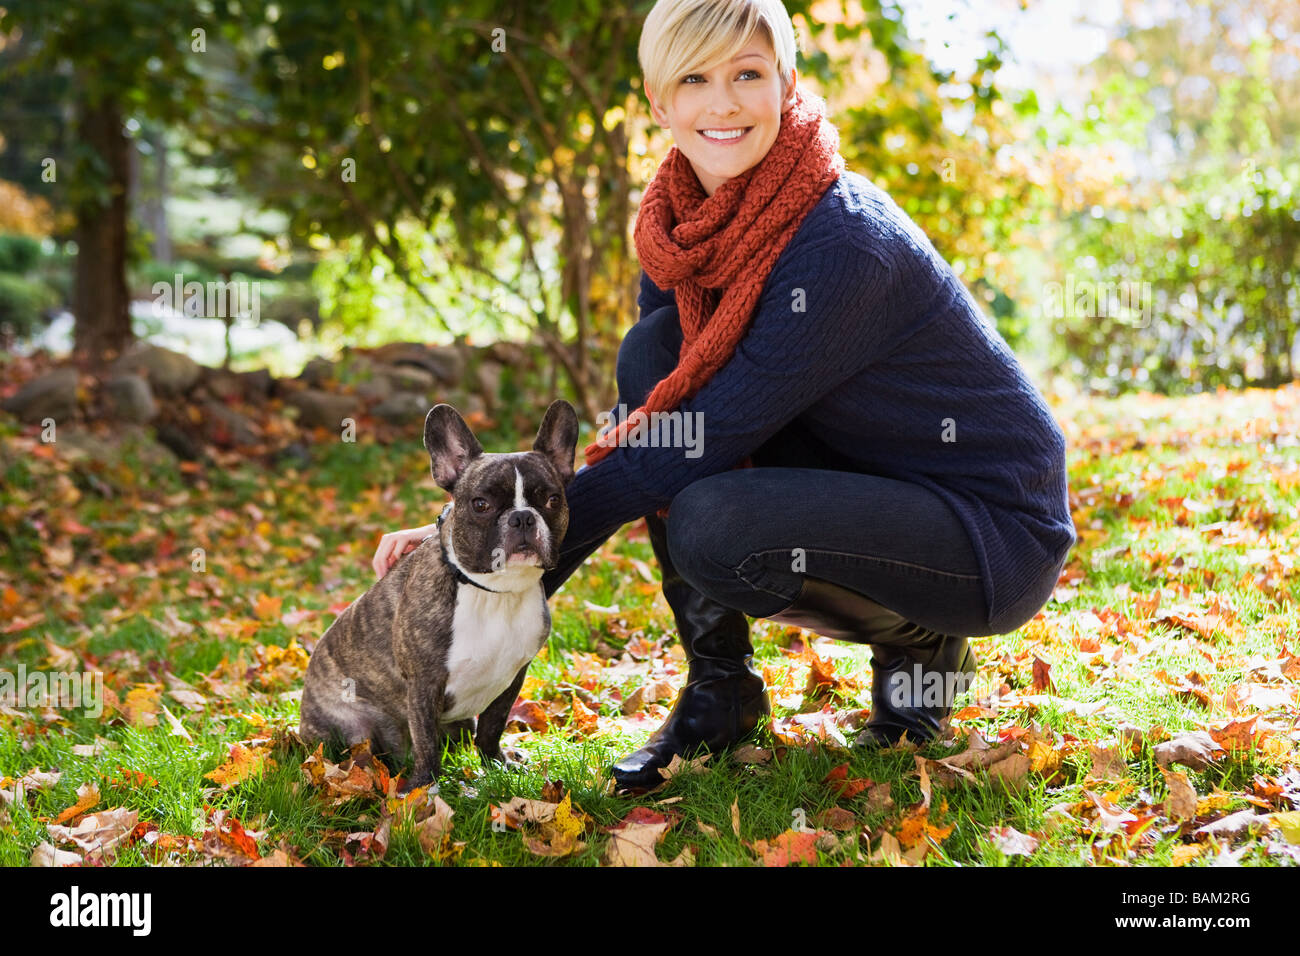 Young woman with pet dog - Stock Image